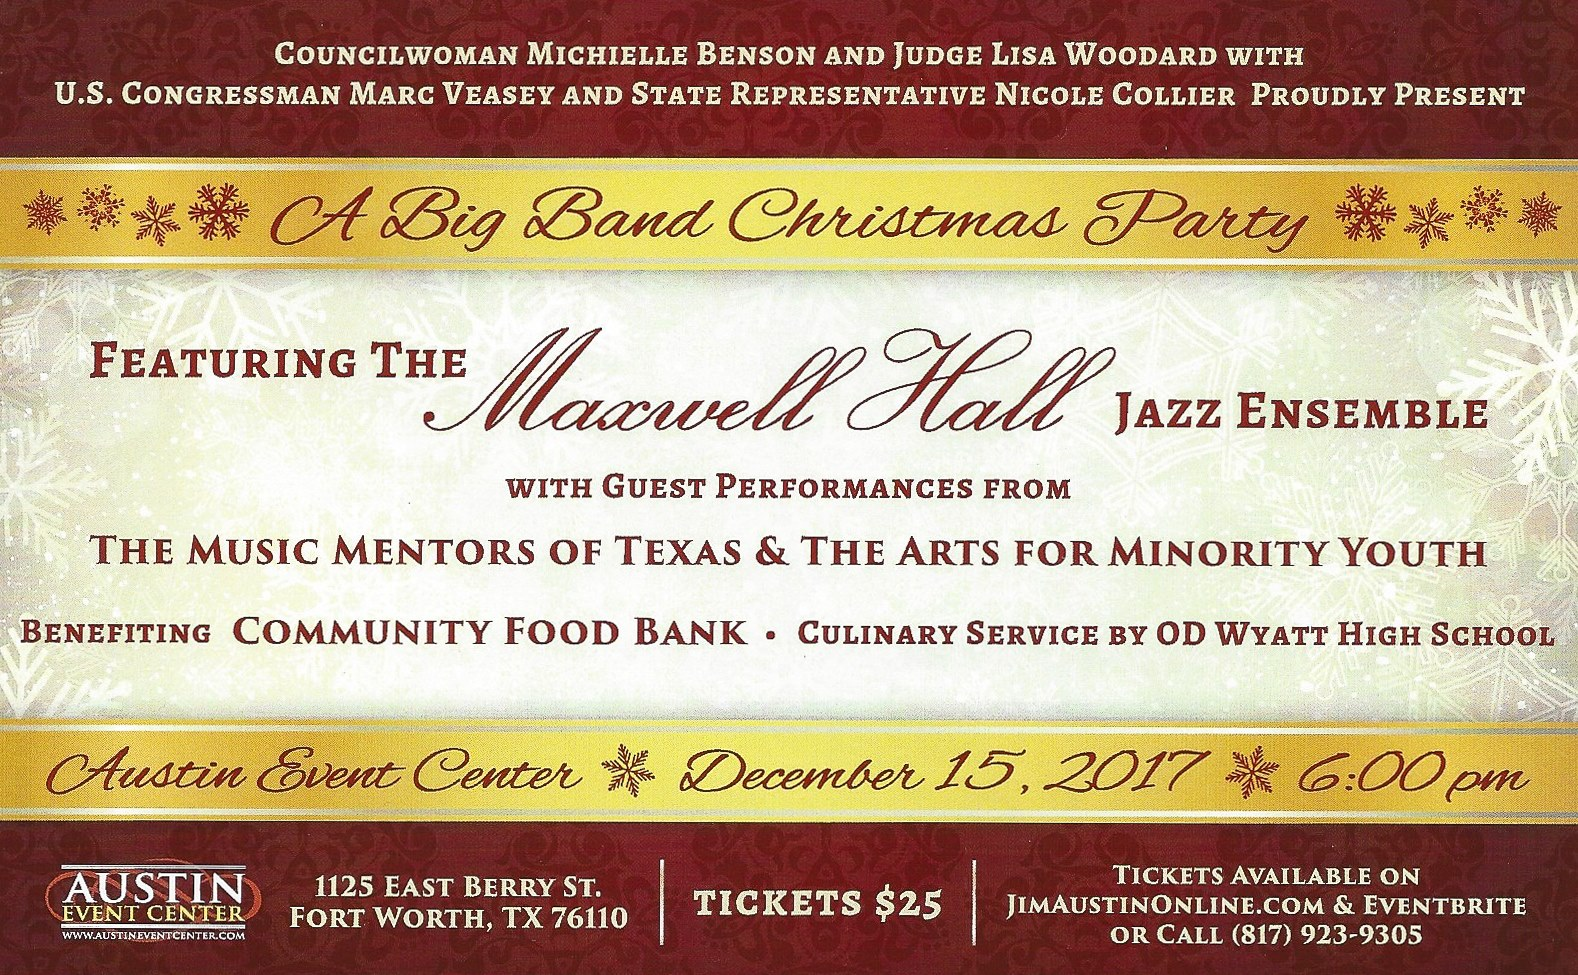 Big Band Christmas Party